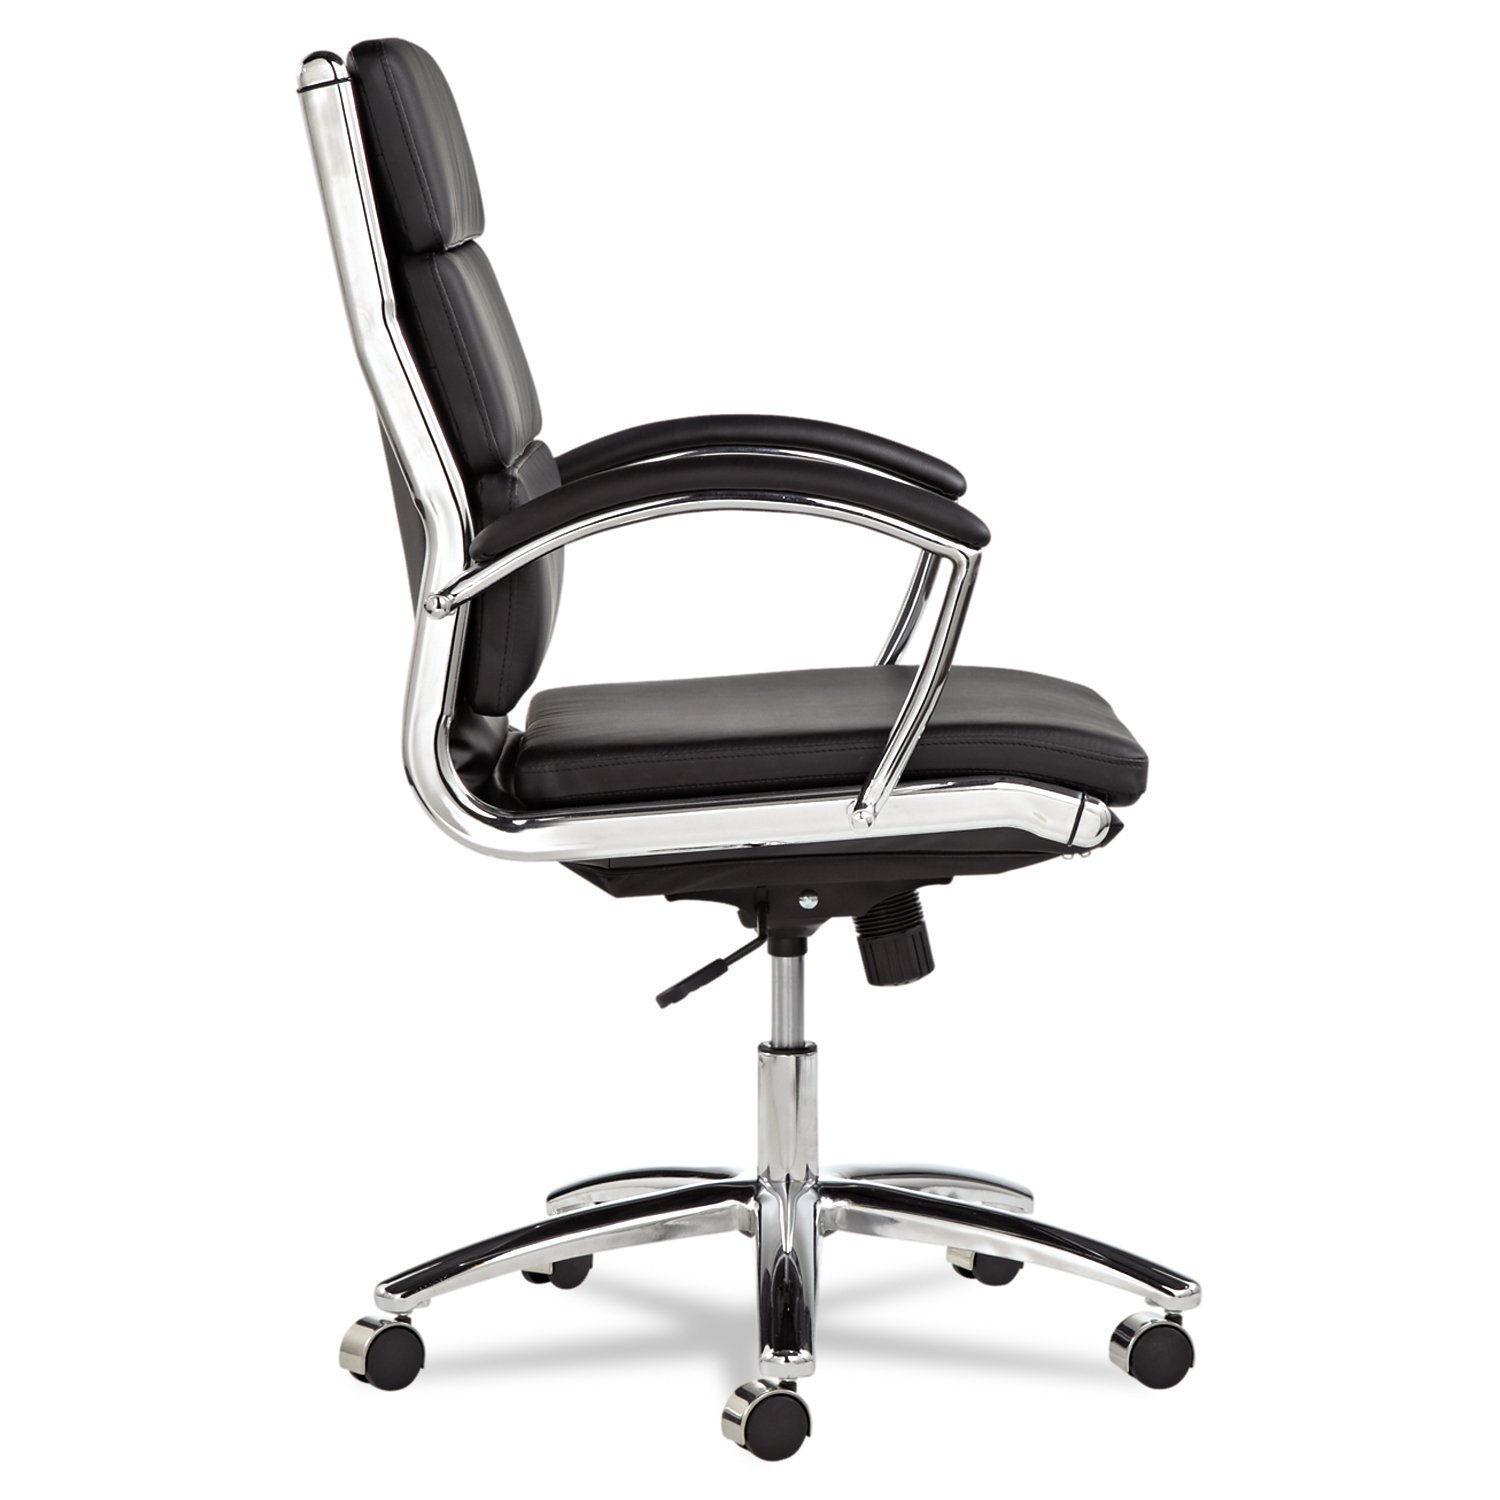 Leather Conference Room Chairs The Benefits Of Having Leather Conference Room Chairs In